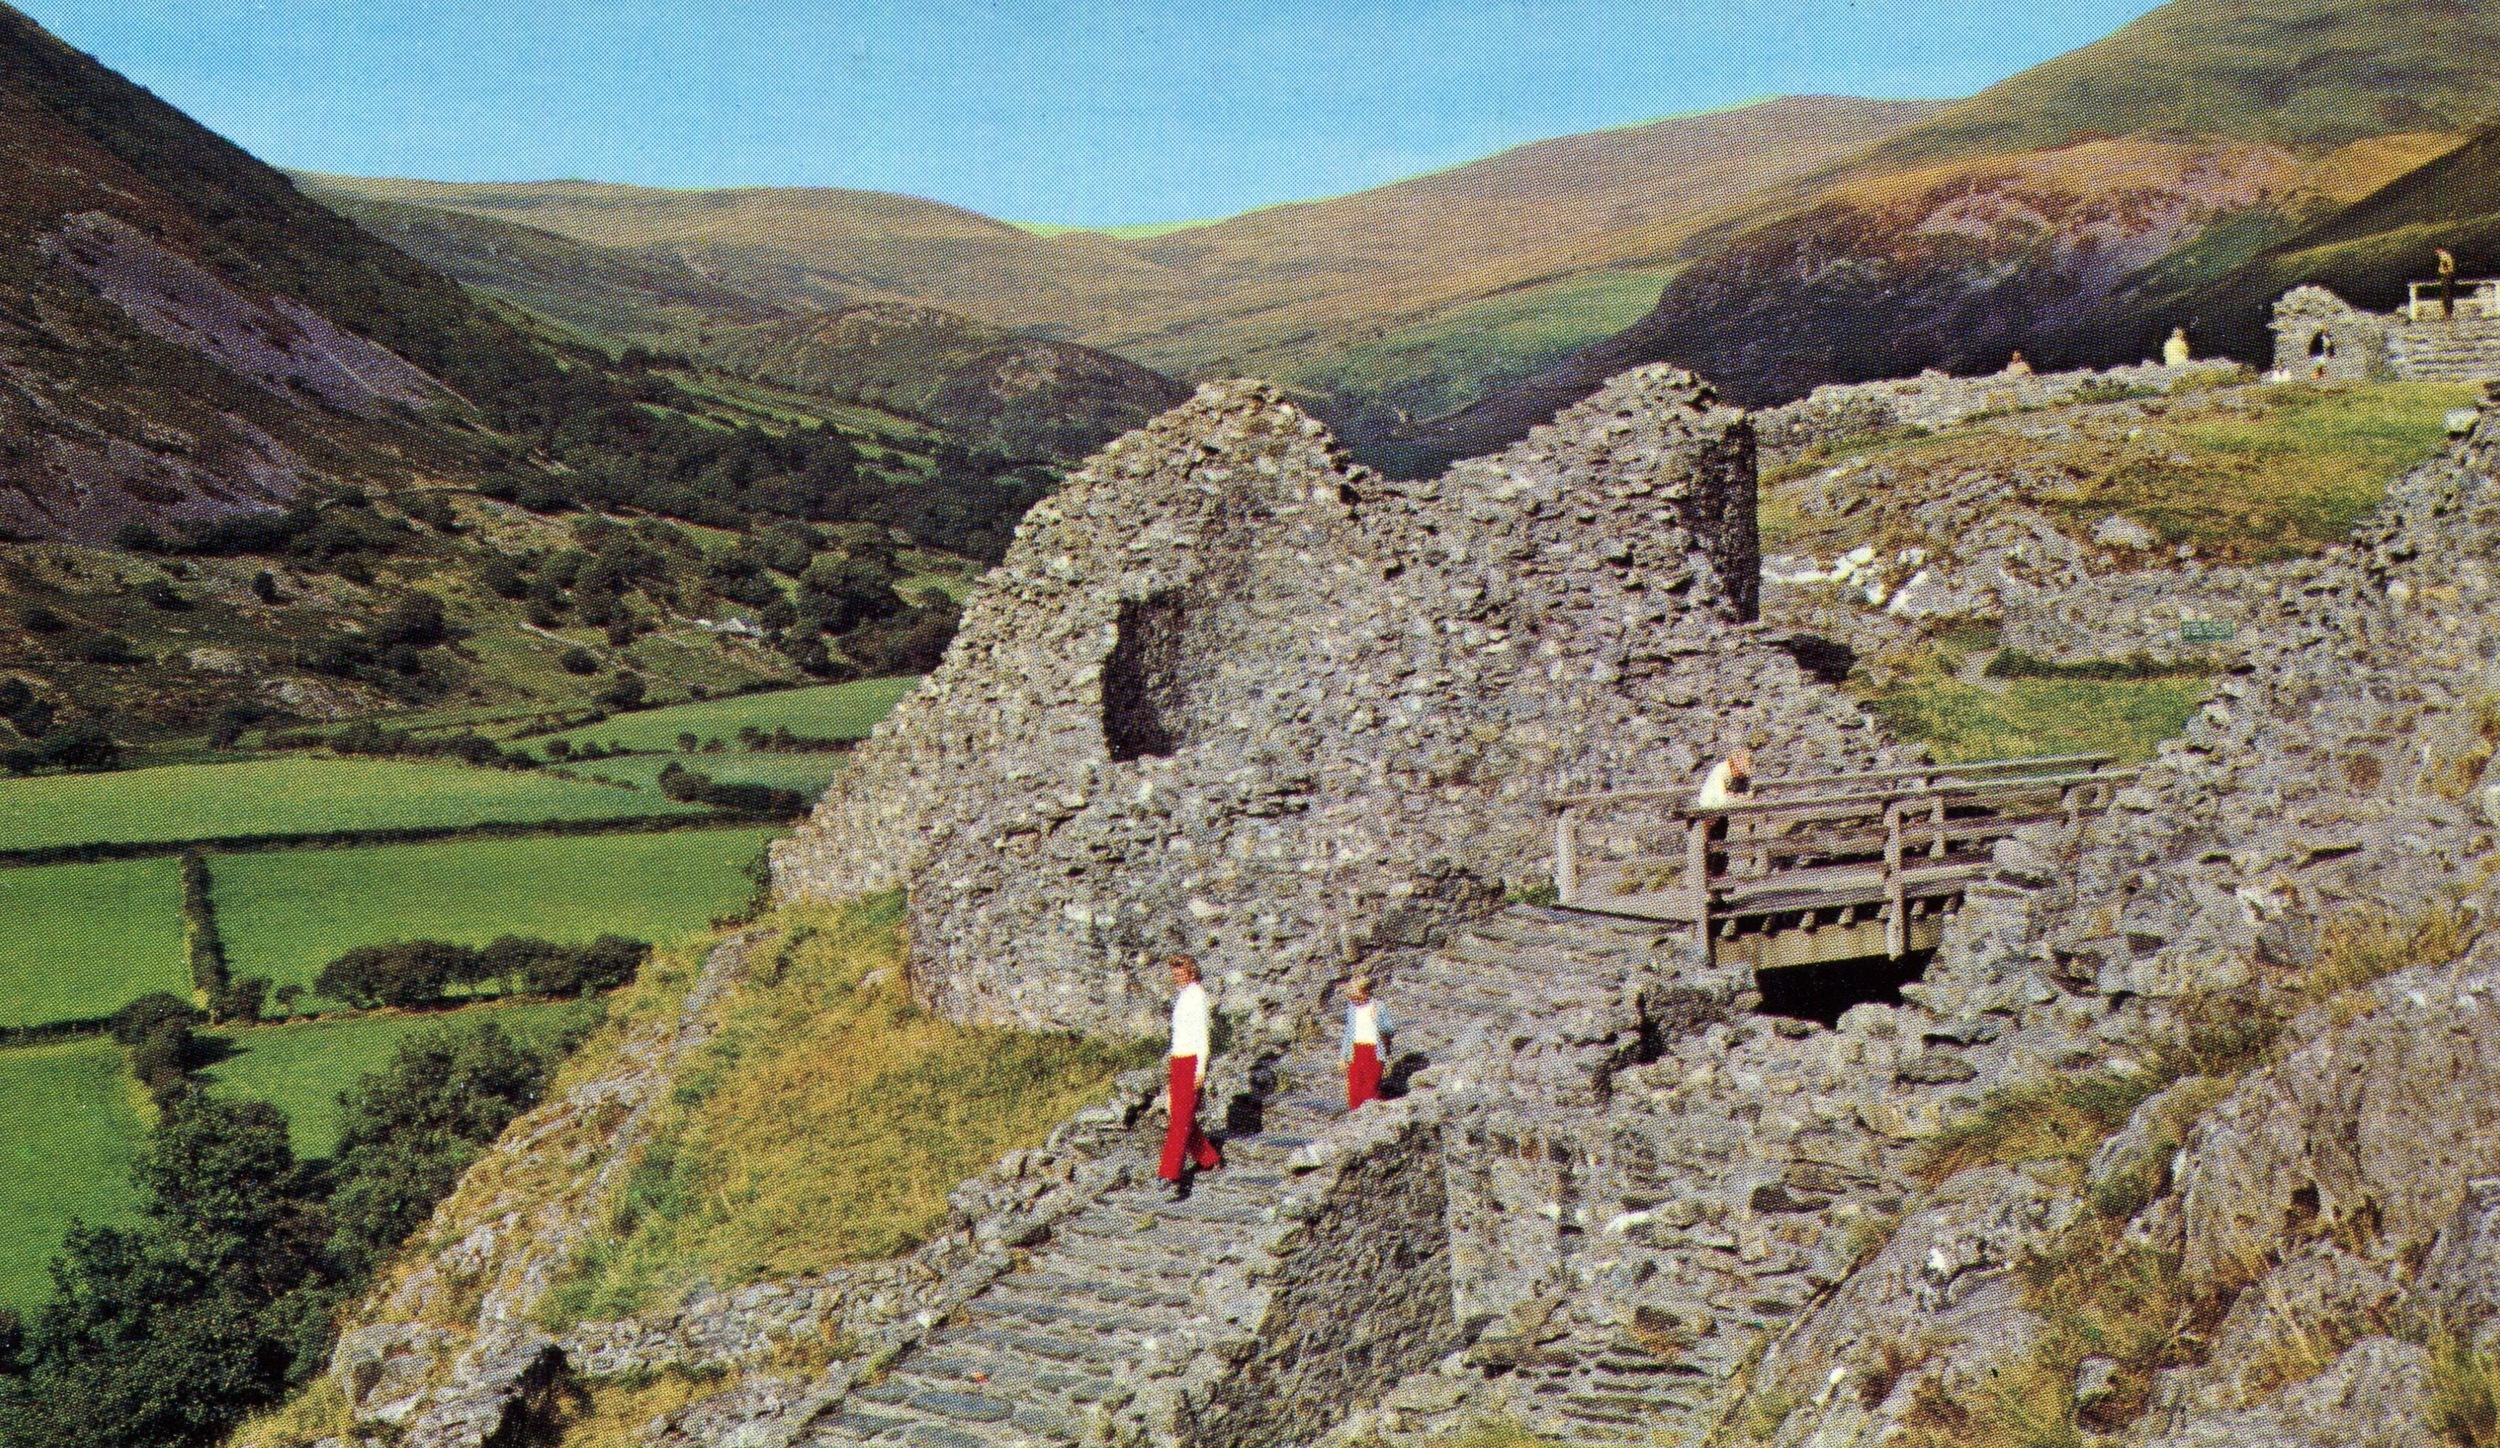 Castell y bere, Wales